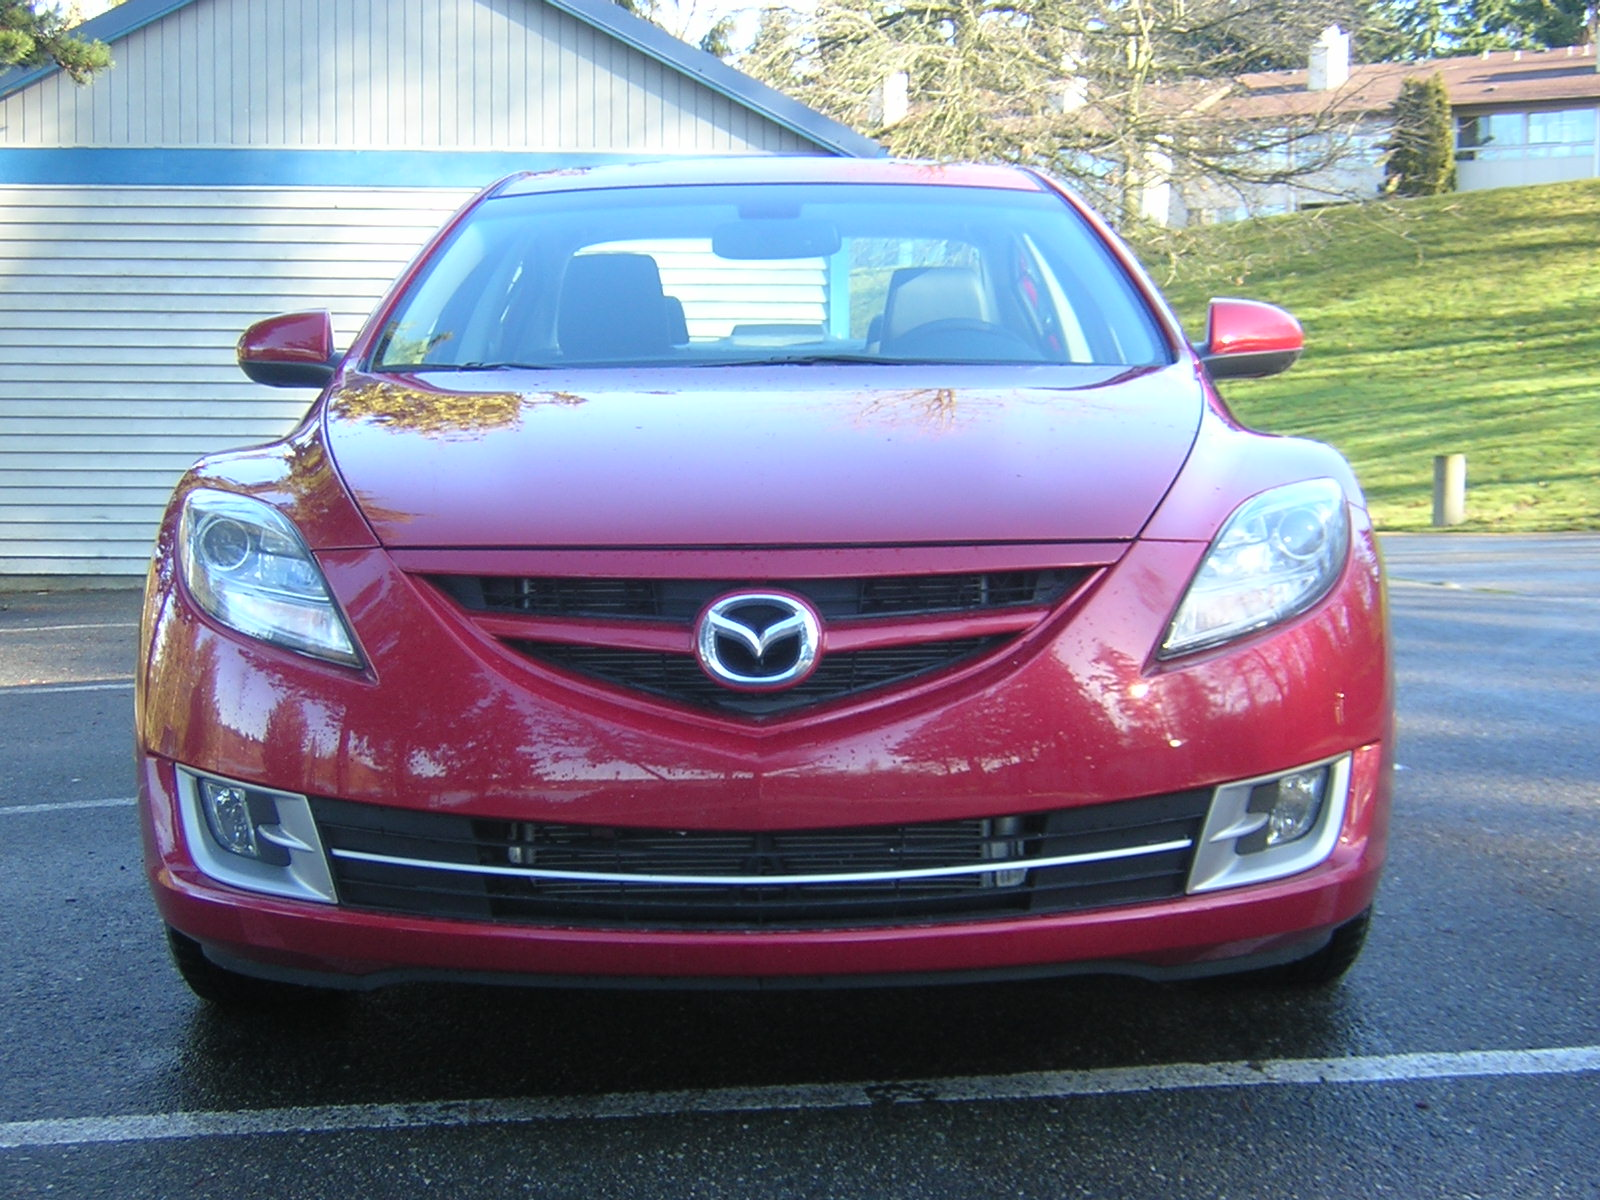 2009 mazda mazda6 i grand touring review autosavant autosavant. Black Bedroom Furniture Sets. Home Design Ideas